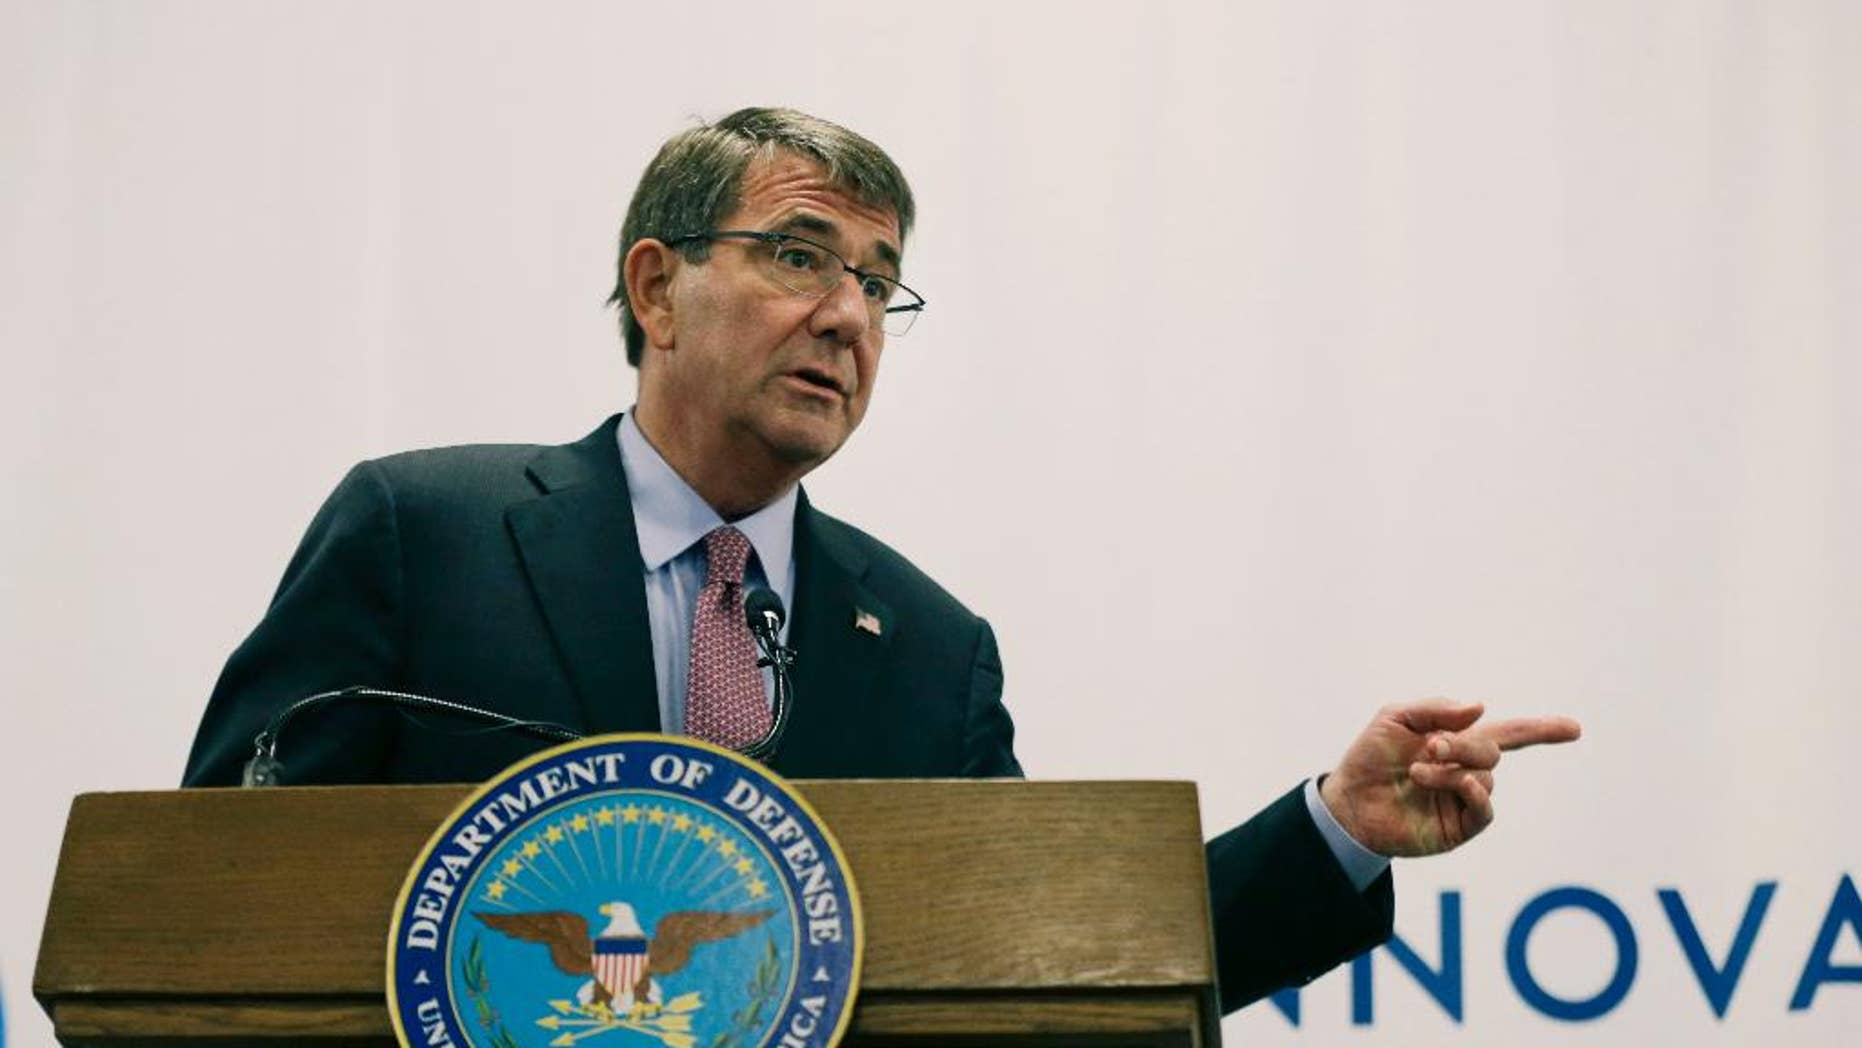 FILE - In this July 26, 2016 file photo, Defense Secretary Ash Carter speaks during a news conference in Cambridge, Mass. The U.S. is exploiting an enormous amount of digital information about the Islamic State obtained by Syrian rebels fighting for control of the city of Manbij. (AP Photo/Elise Amendola)